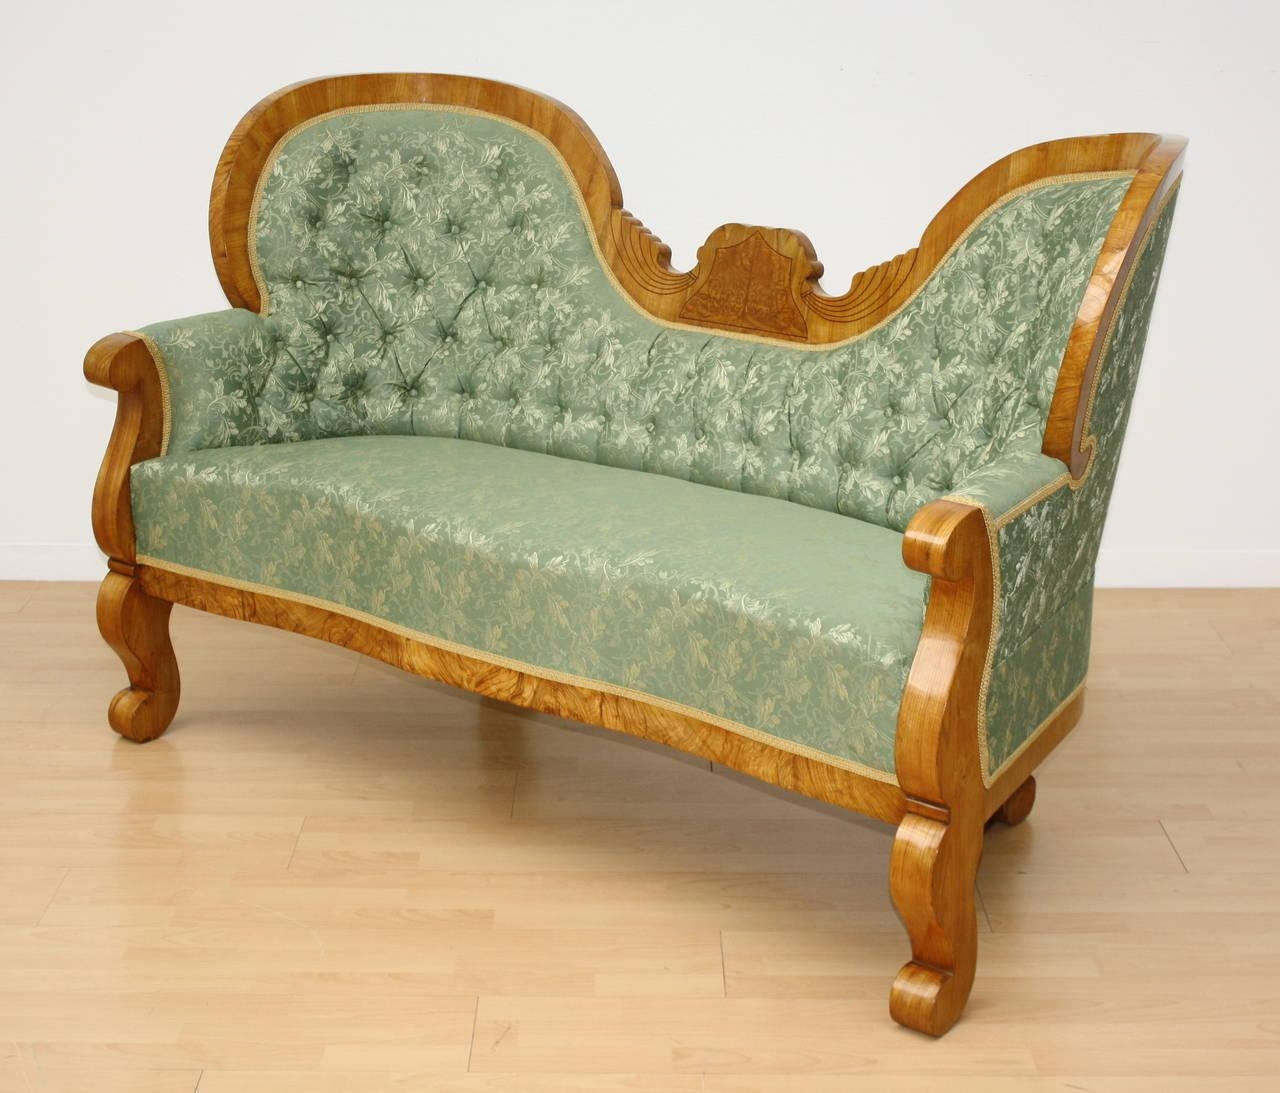 19Th Century Austrian Biedermeier Sofa For Sale At 1Stdibs intended for Biedermeier Sofas